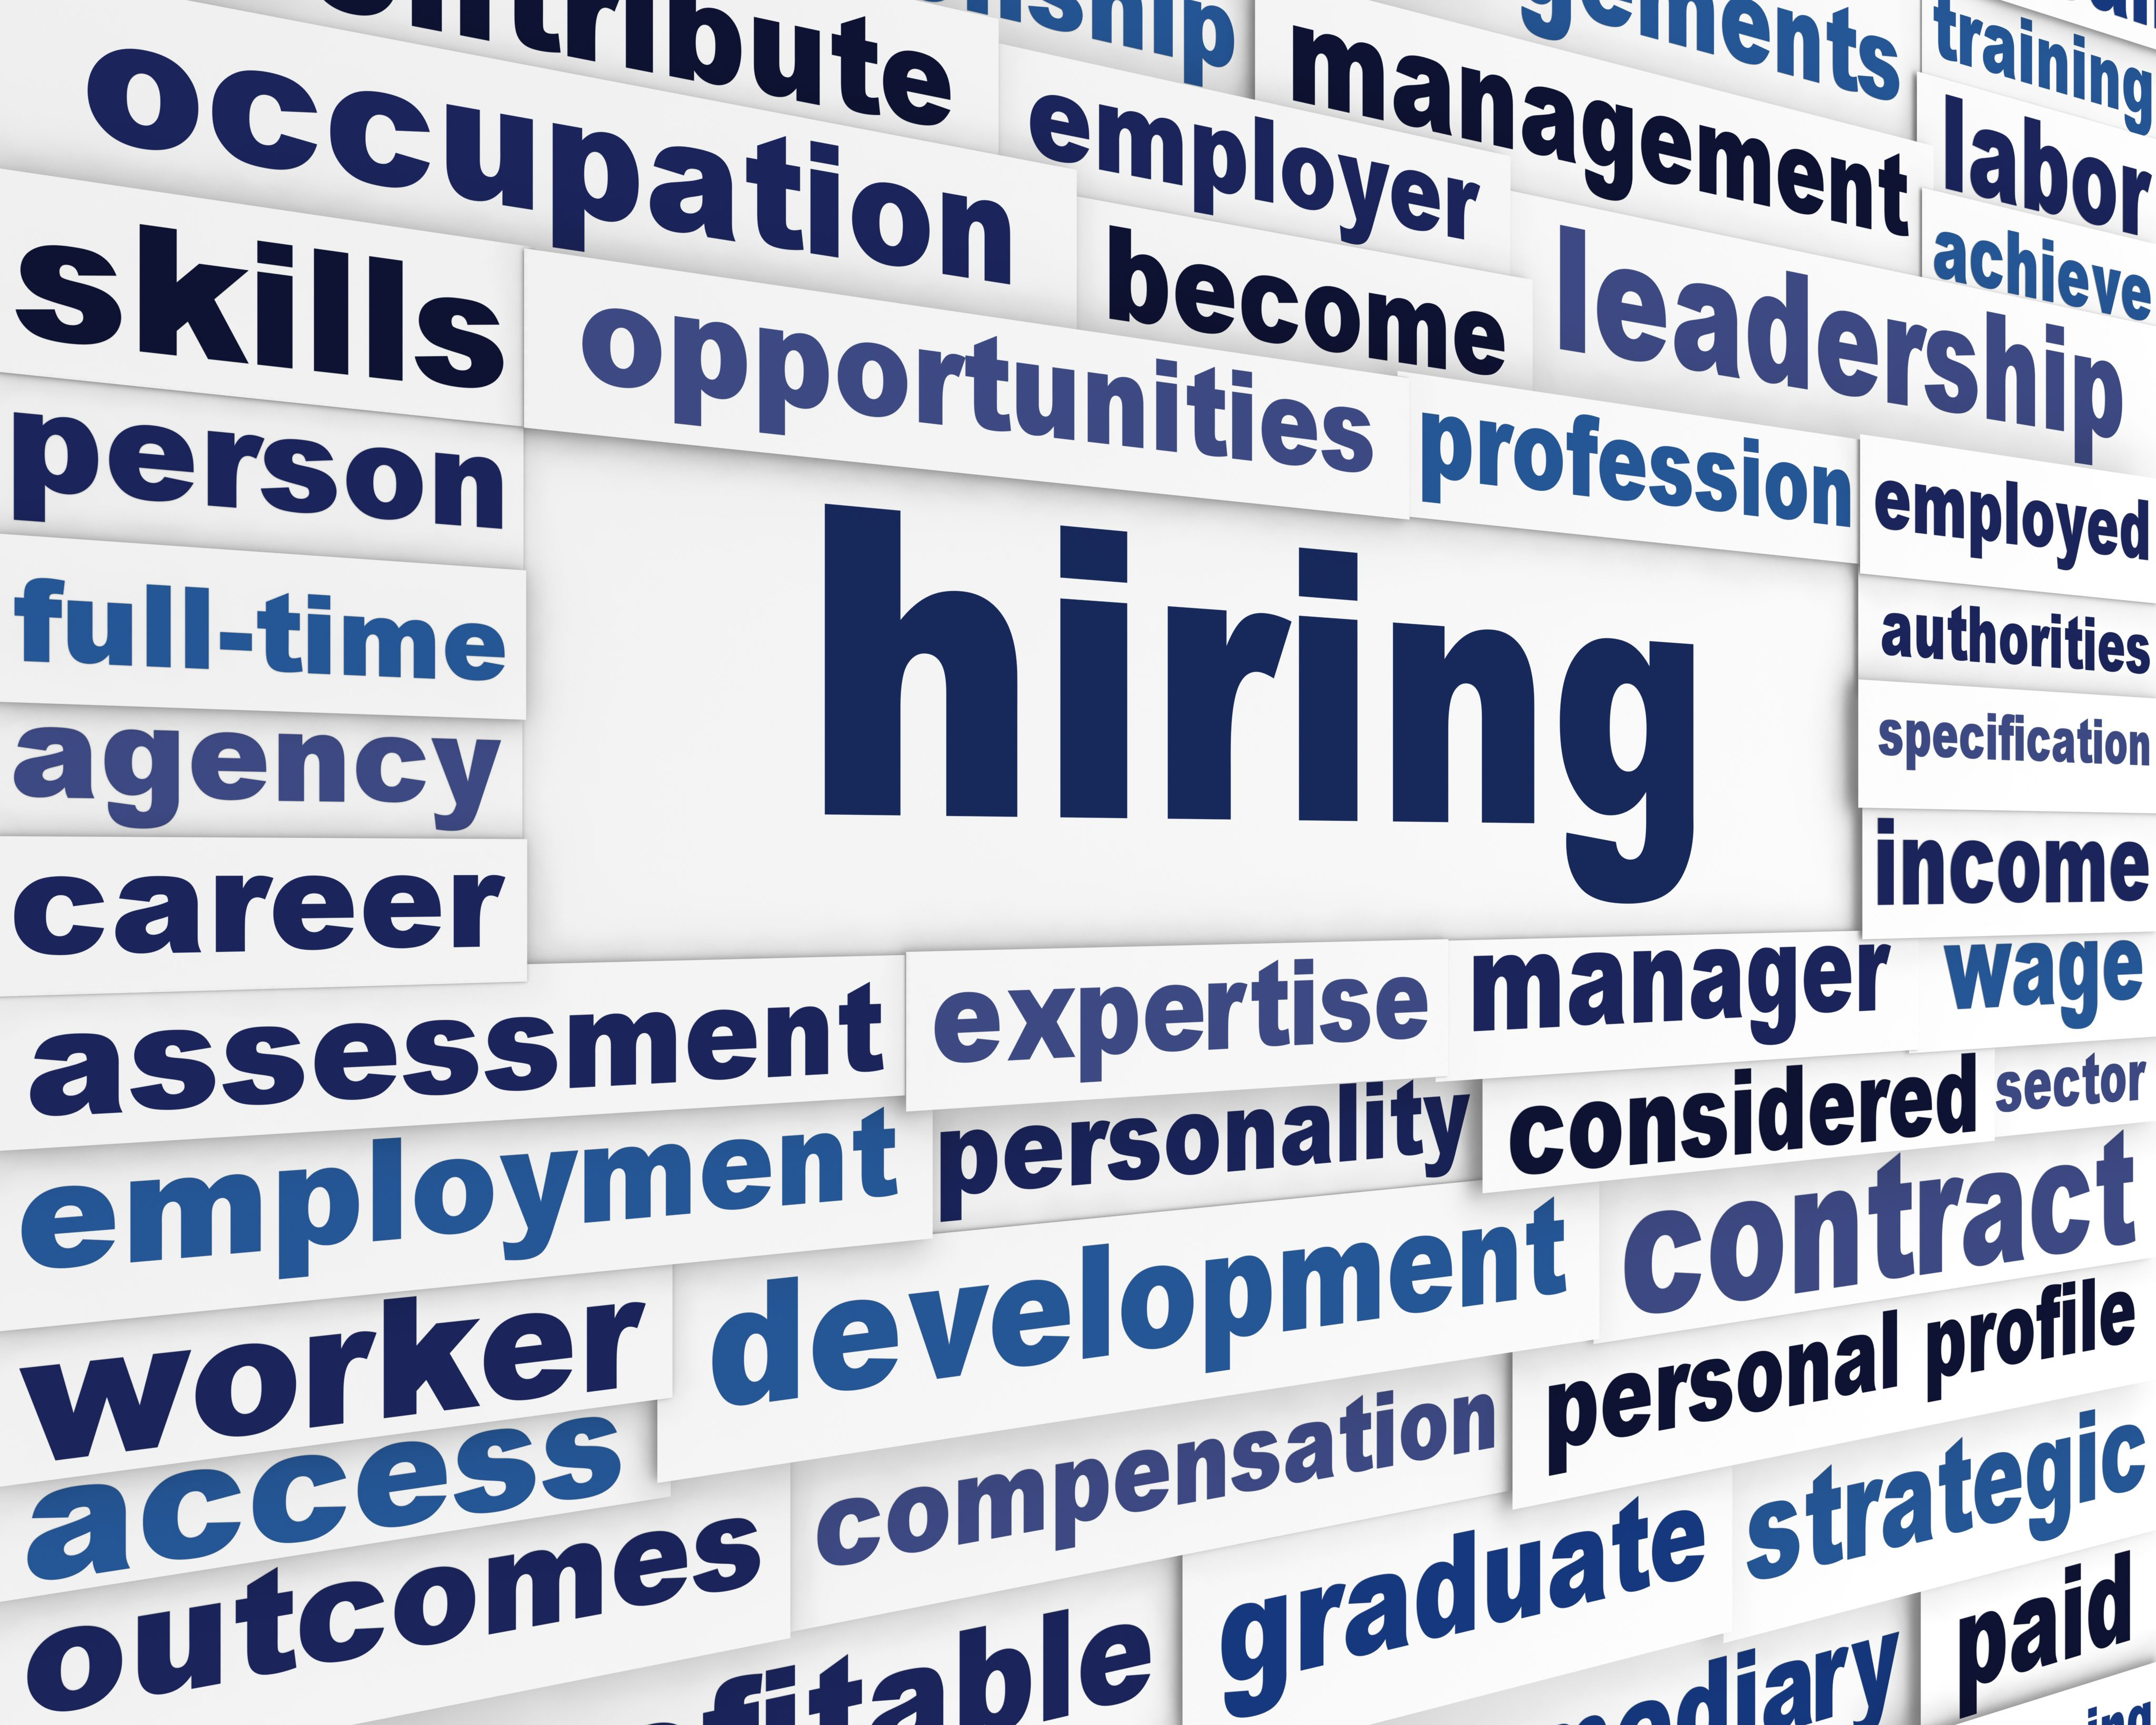 Niche Market Insurers is hiring life insurance agents in